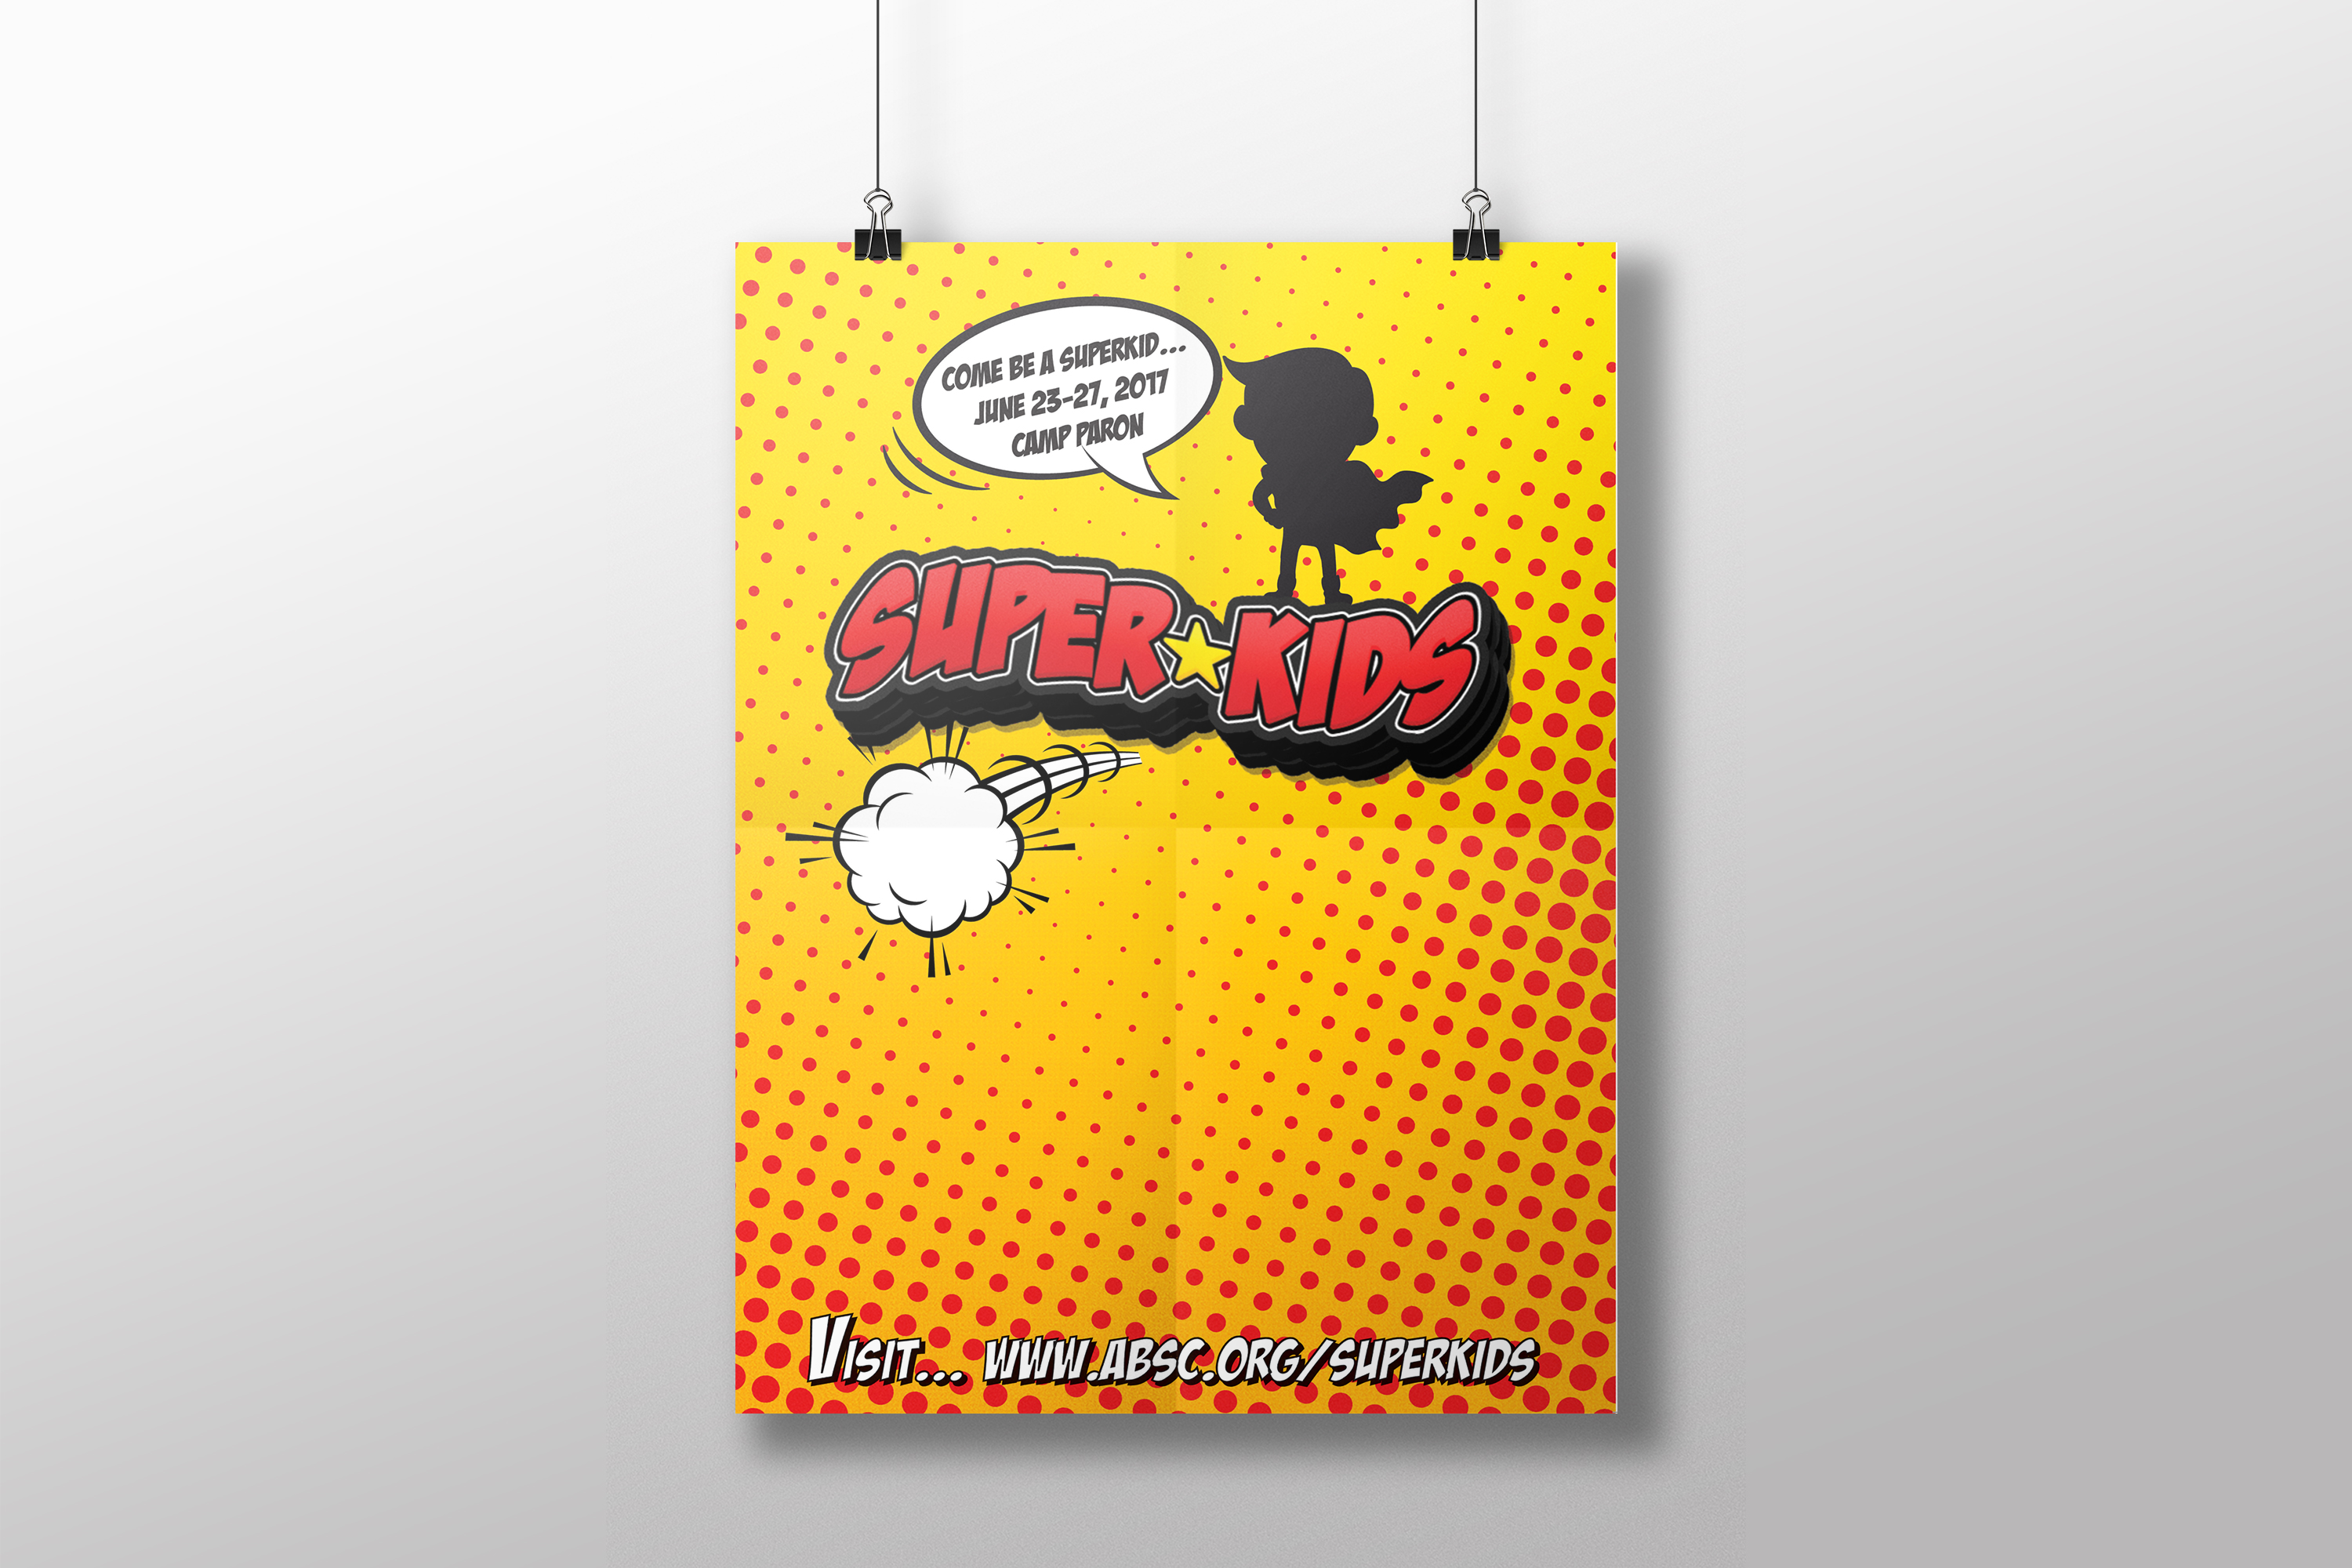 <span>Graphic Design, Branding/Identity, Brochure, Event, Other, Poster</span>SuperKids Poster